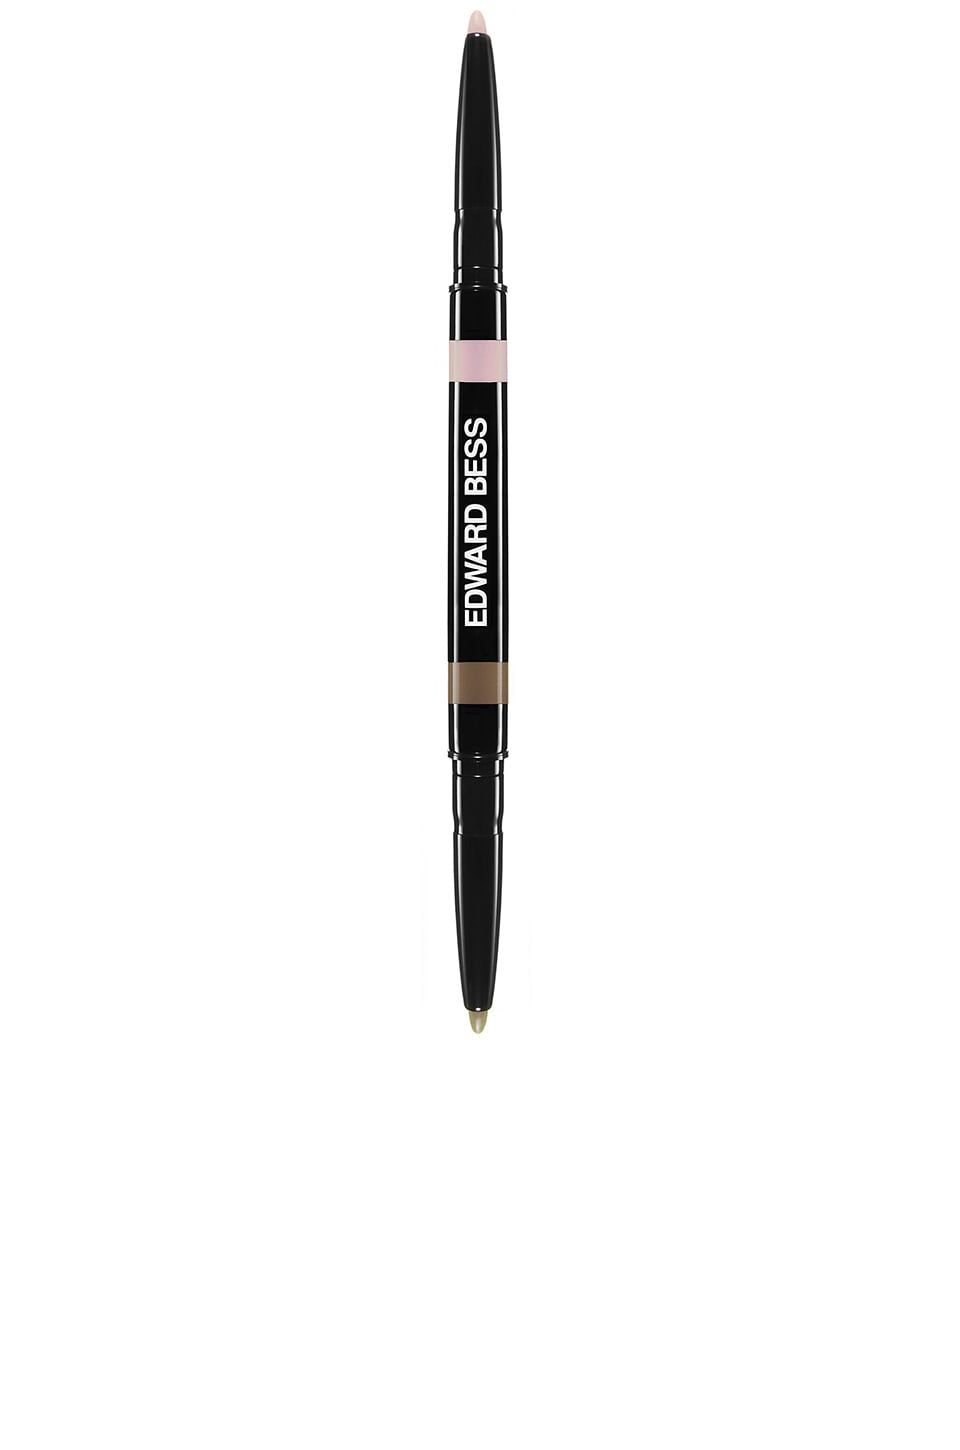 Edward Bess Fully Defined Eyebrow Duo in Neutral